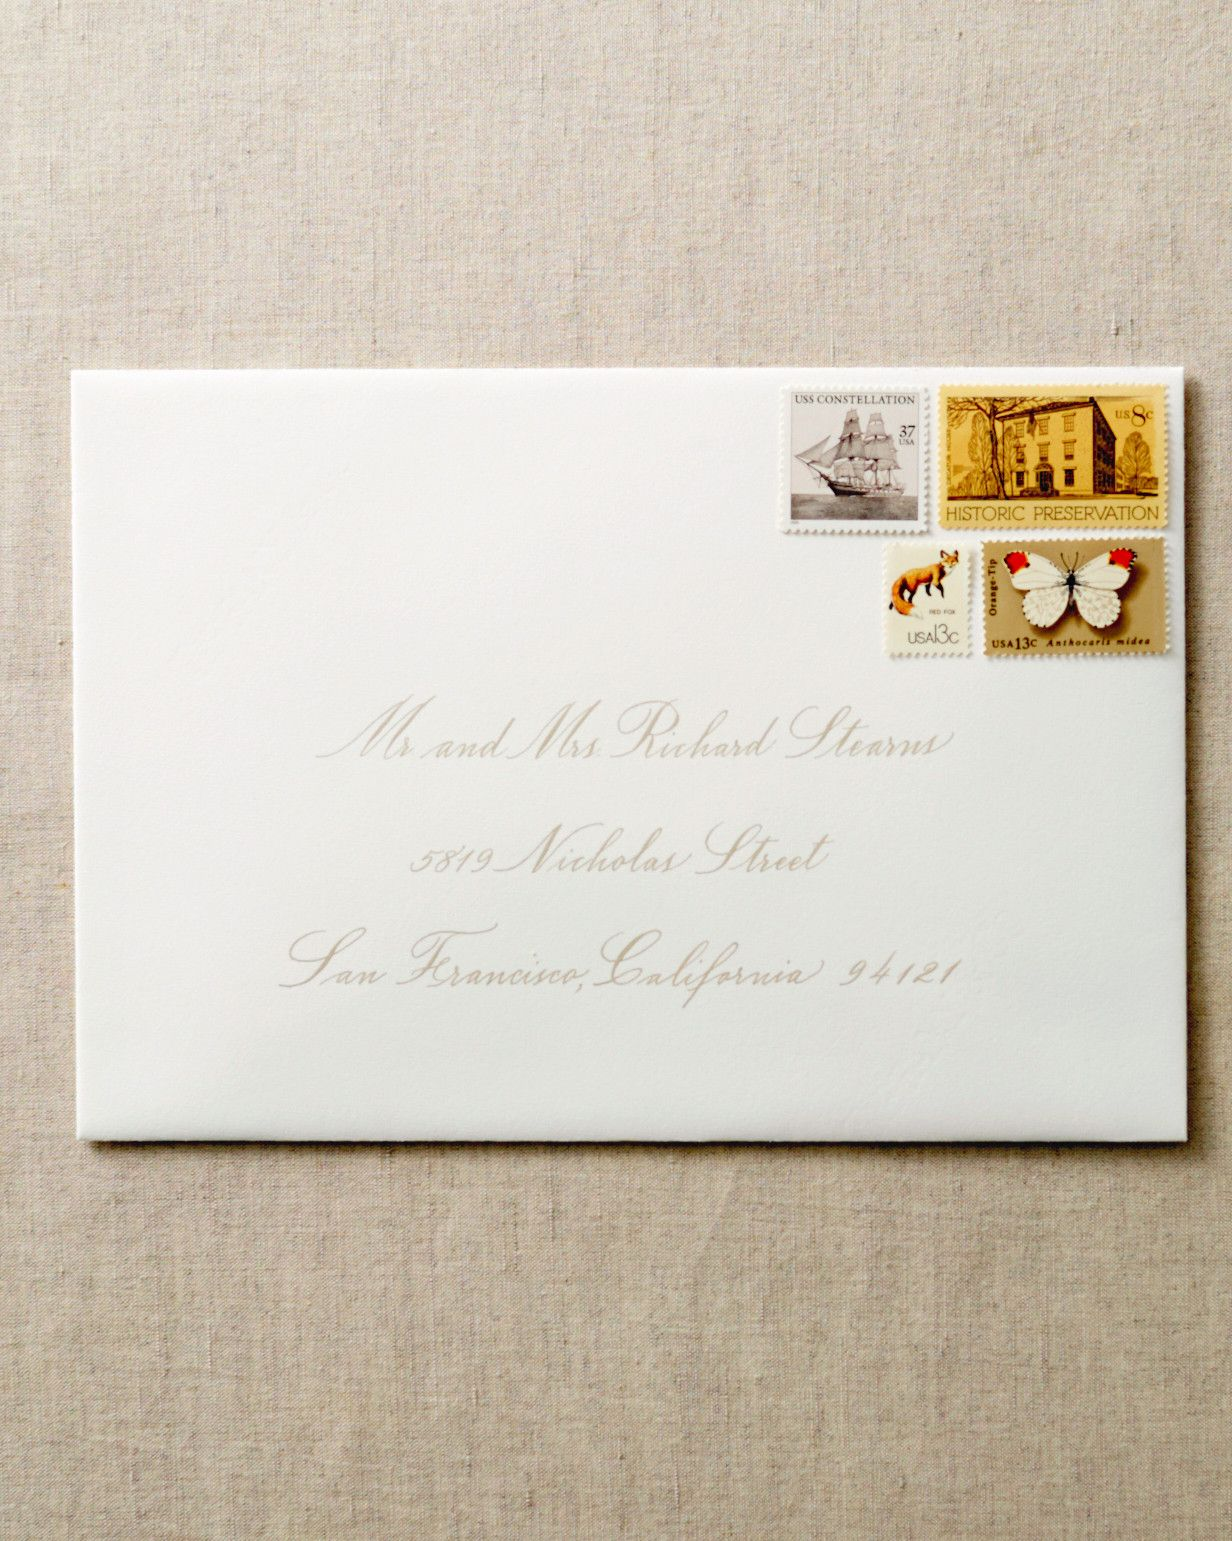 How To Address Guests On Wedding Invitation Envelopes Addressing Wedding Invitations Invitation Envelopes Wedding Invitation Envelopes